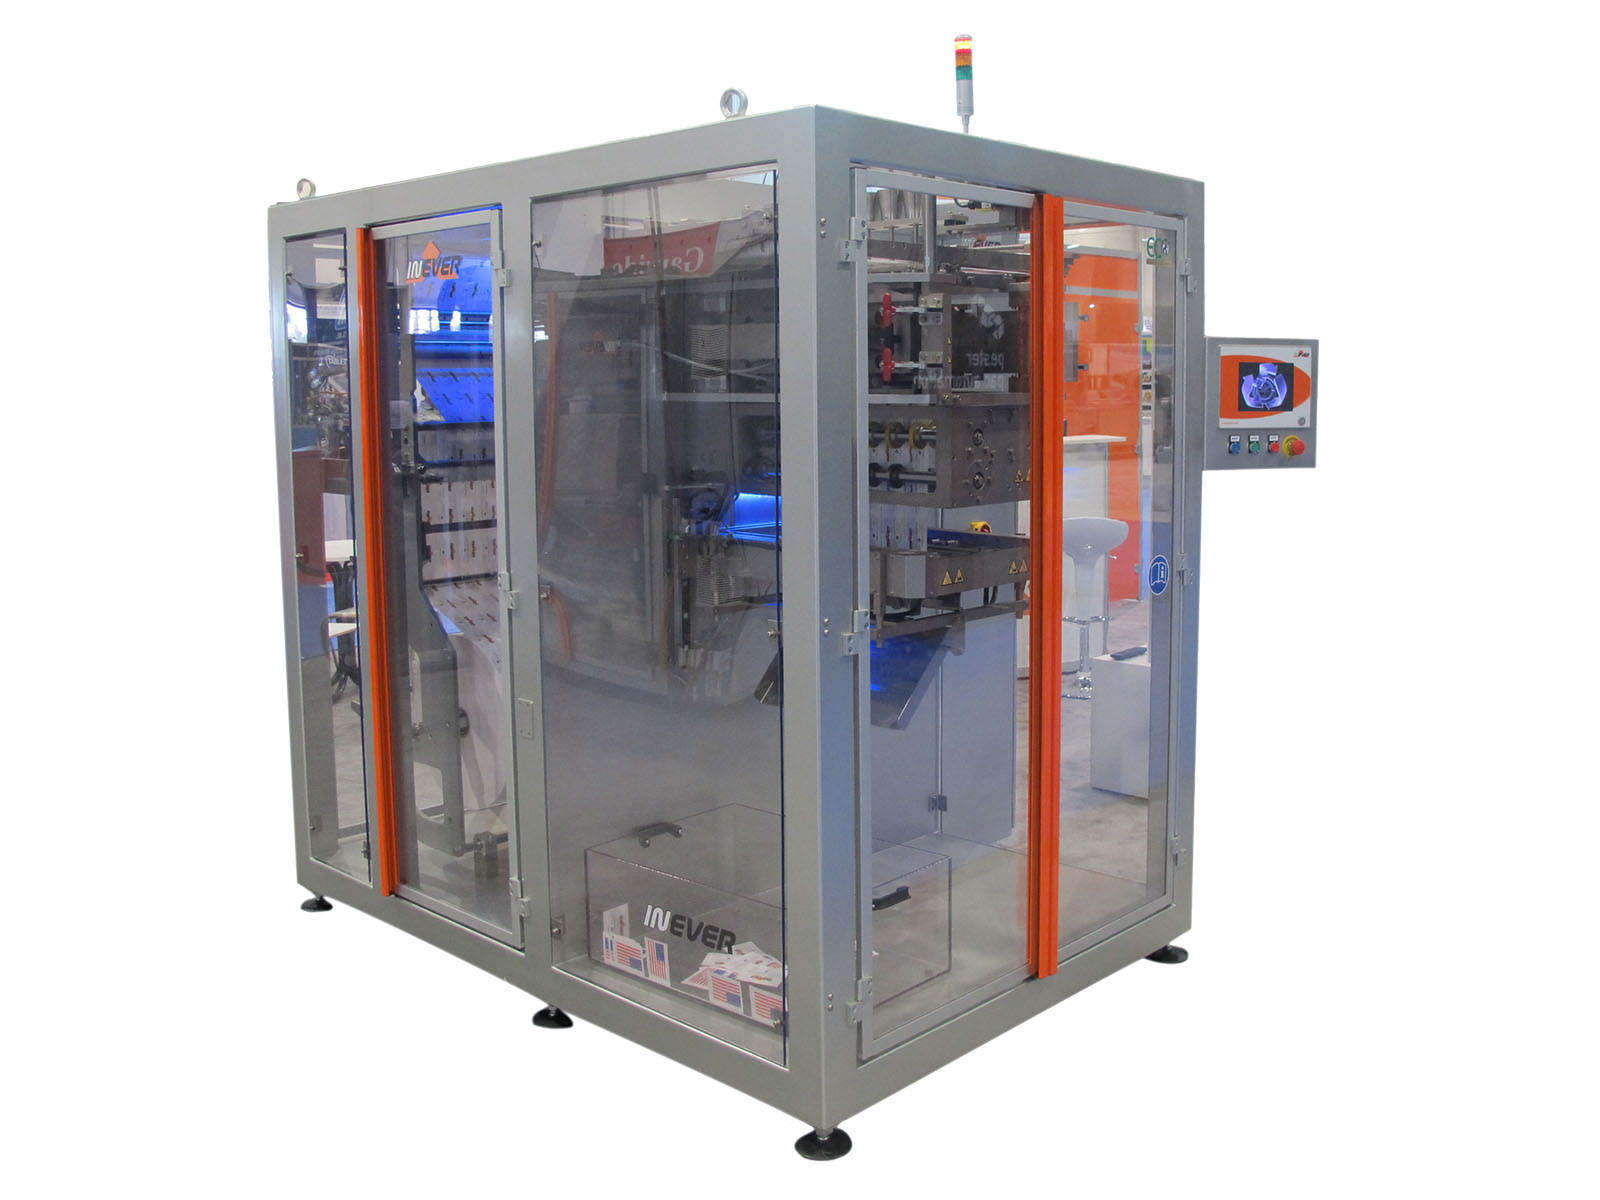 VFFS Multilane Sachet Machine - MVA1200 - Stickpack and Sachet Packaging Solutions